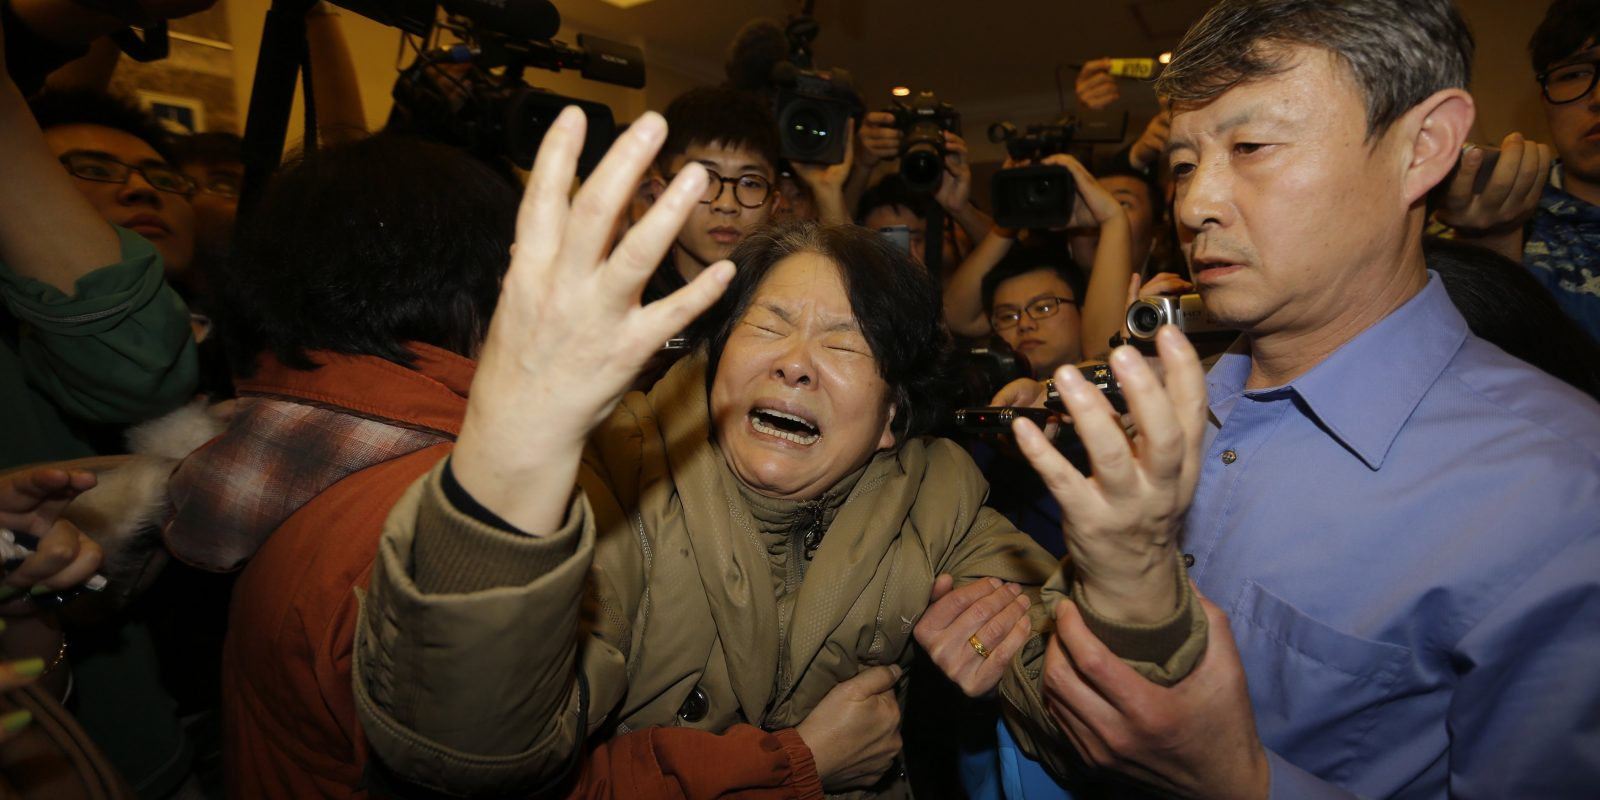 A family member of a passenger aboard Malaysia Airlines MH370 cries as she is surrounded by journalists after watching a television broadcast of a news conference, at the Lido hotel in Beijing. Imagen Por: A family member of a passenger aboard Malaysia Airlines MH370 cries as she is surrounded by journalists after watching a television broadcast of a news conference, at the Lido hotel in Beijing, March 24, 2014. Relatives of Chinese passengers aboard the missing Malaysia Airlines flight reacted with hysteria on Monday after the Malaysian prime minister announced the jet ended its journey in the remote Southern Indian Ocean. REUTERS/Jason Lee (CHINA - Tags: TRANSPORT DISASTER MEDIA TPX IMAGES OF THE DAY)